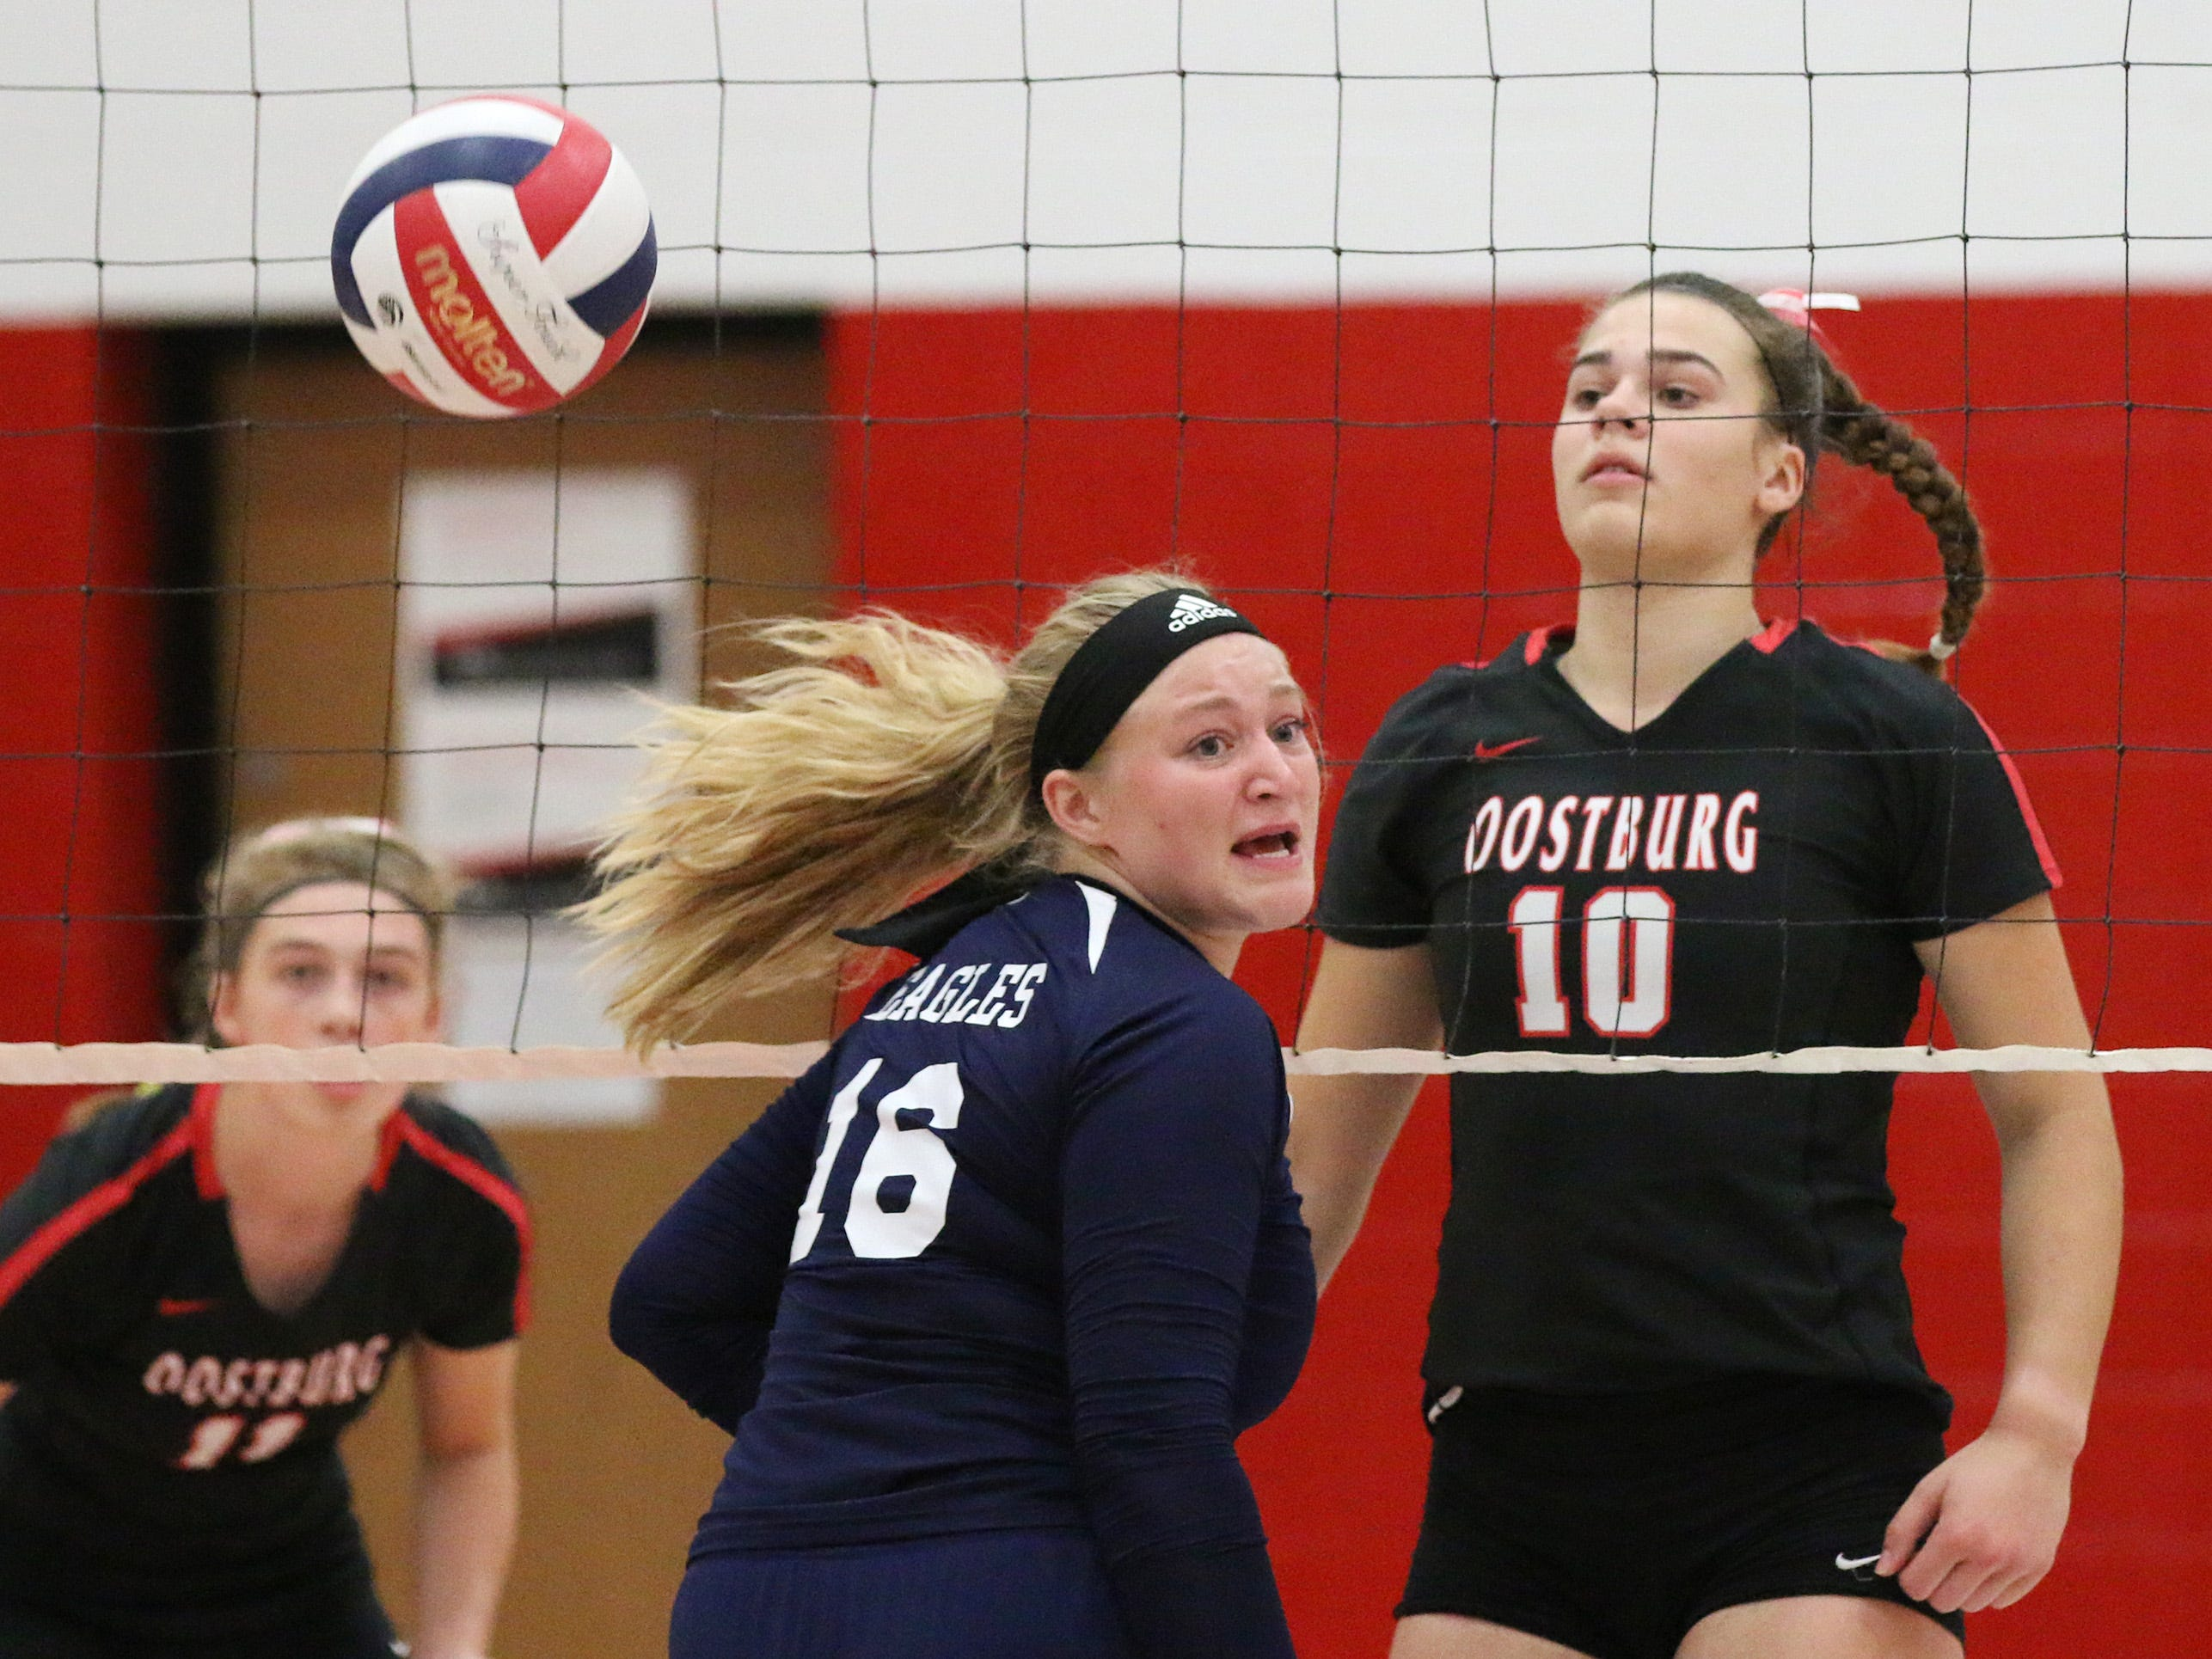 A Sheboygan Christian player reacts to a play against Oostburg, Thursday, September 13, 2018, in Oostburg, Wis.